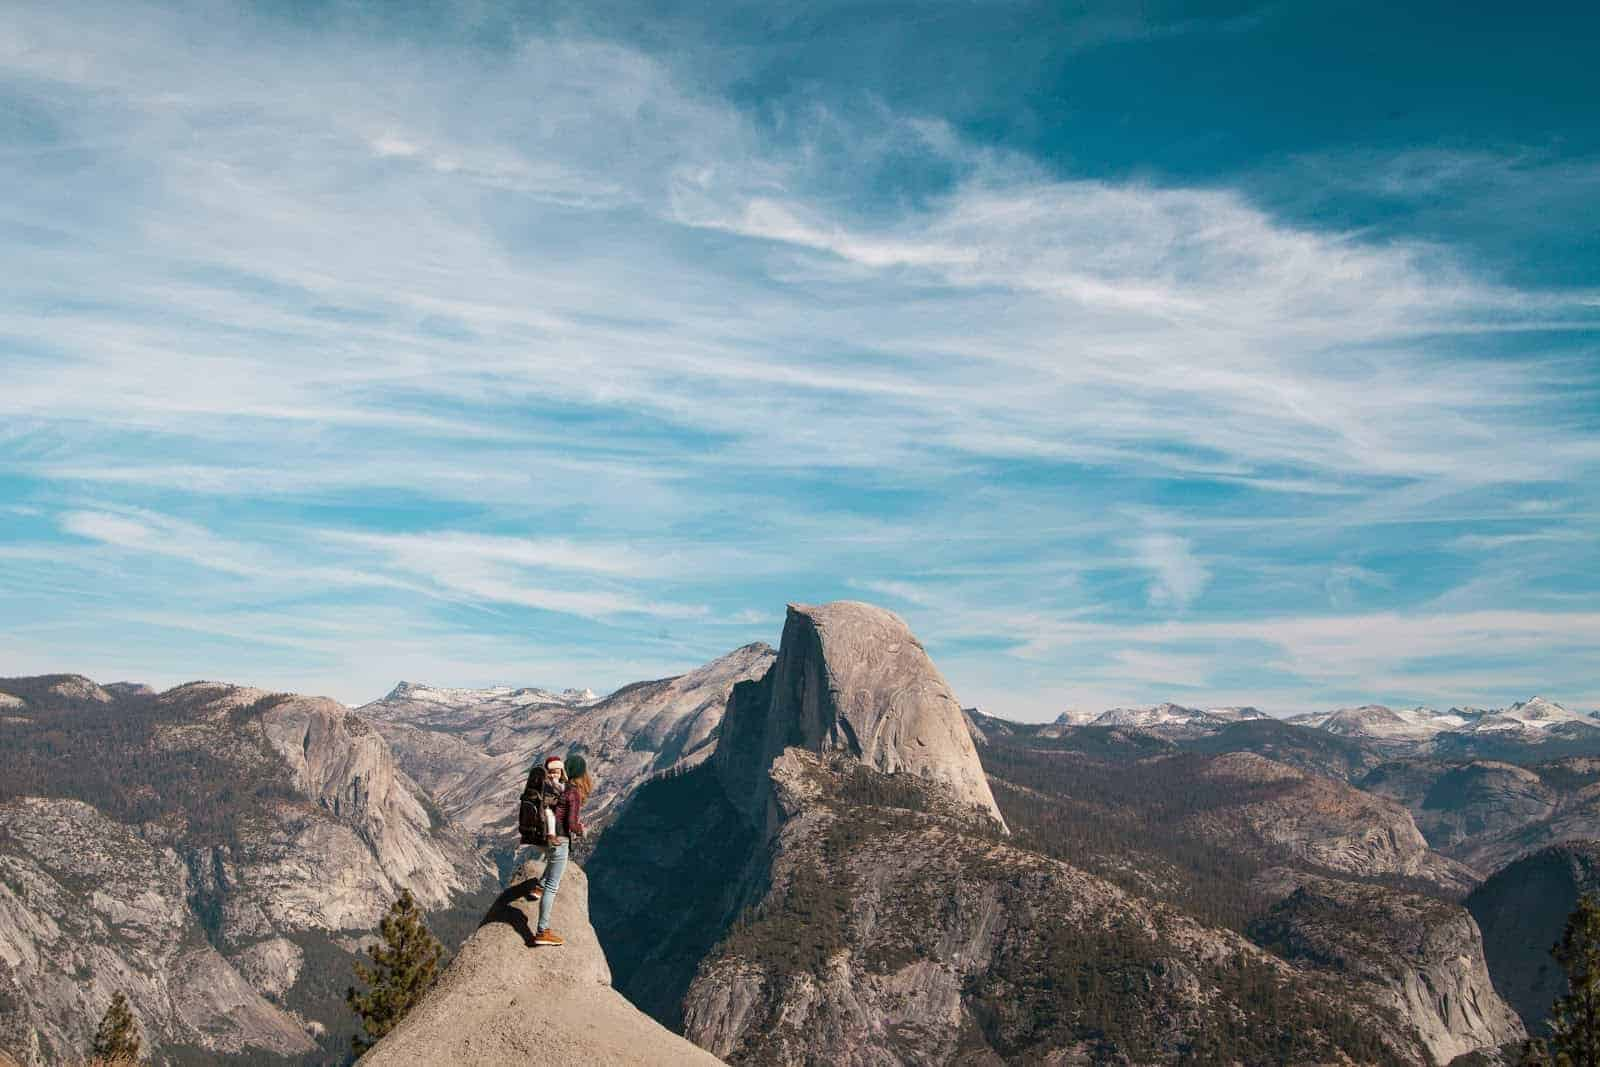 Person on mountaintop near Half Dome in Yosemite